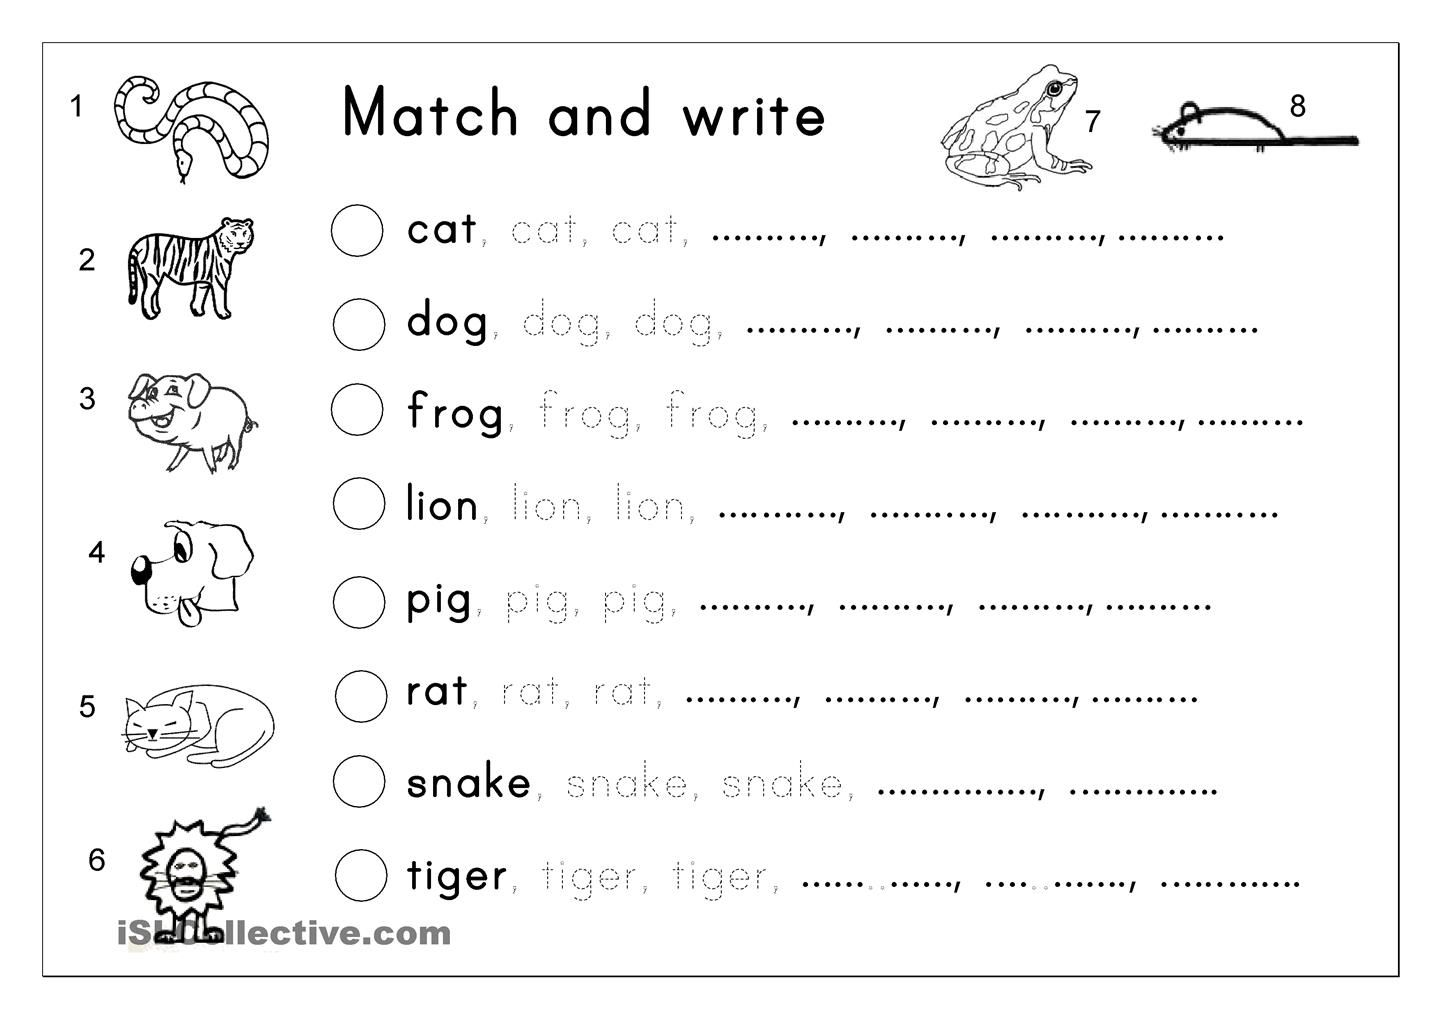 esl writing activities for kids Here are some wonderful creative writing activities for making the process fun and engaging for literary students looking to express themselves.